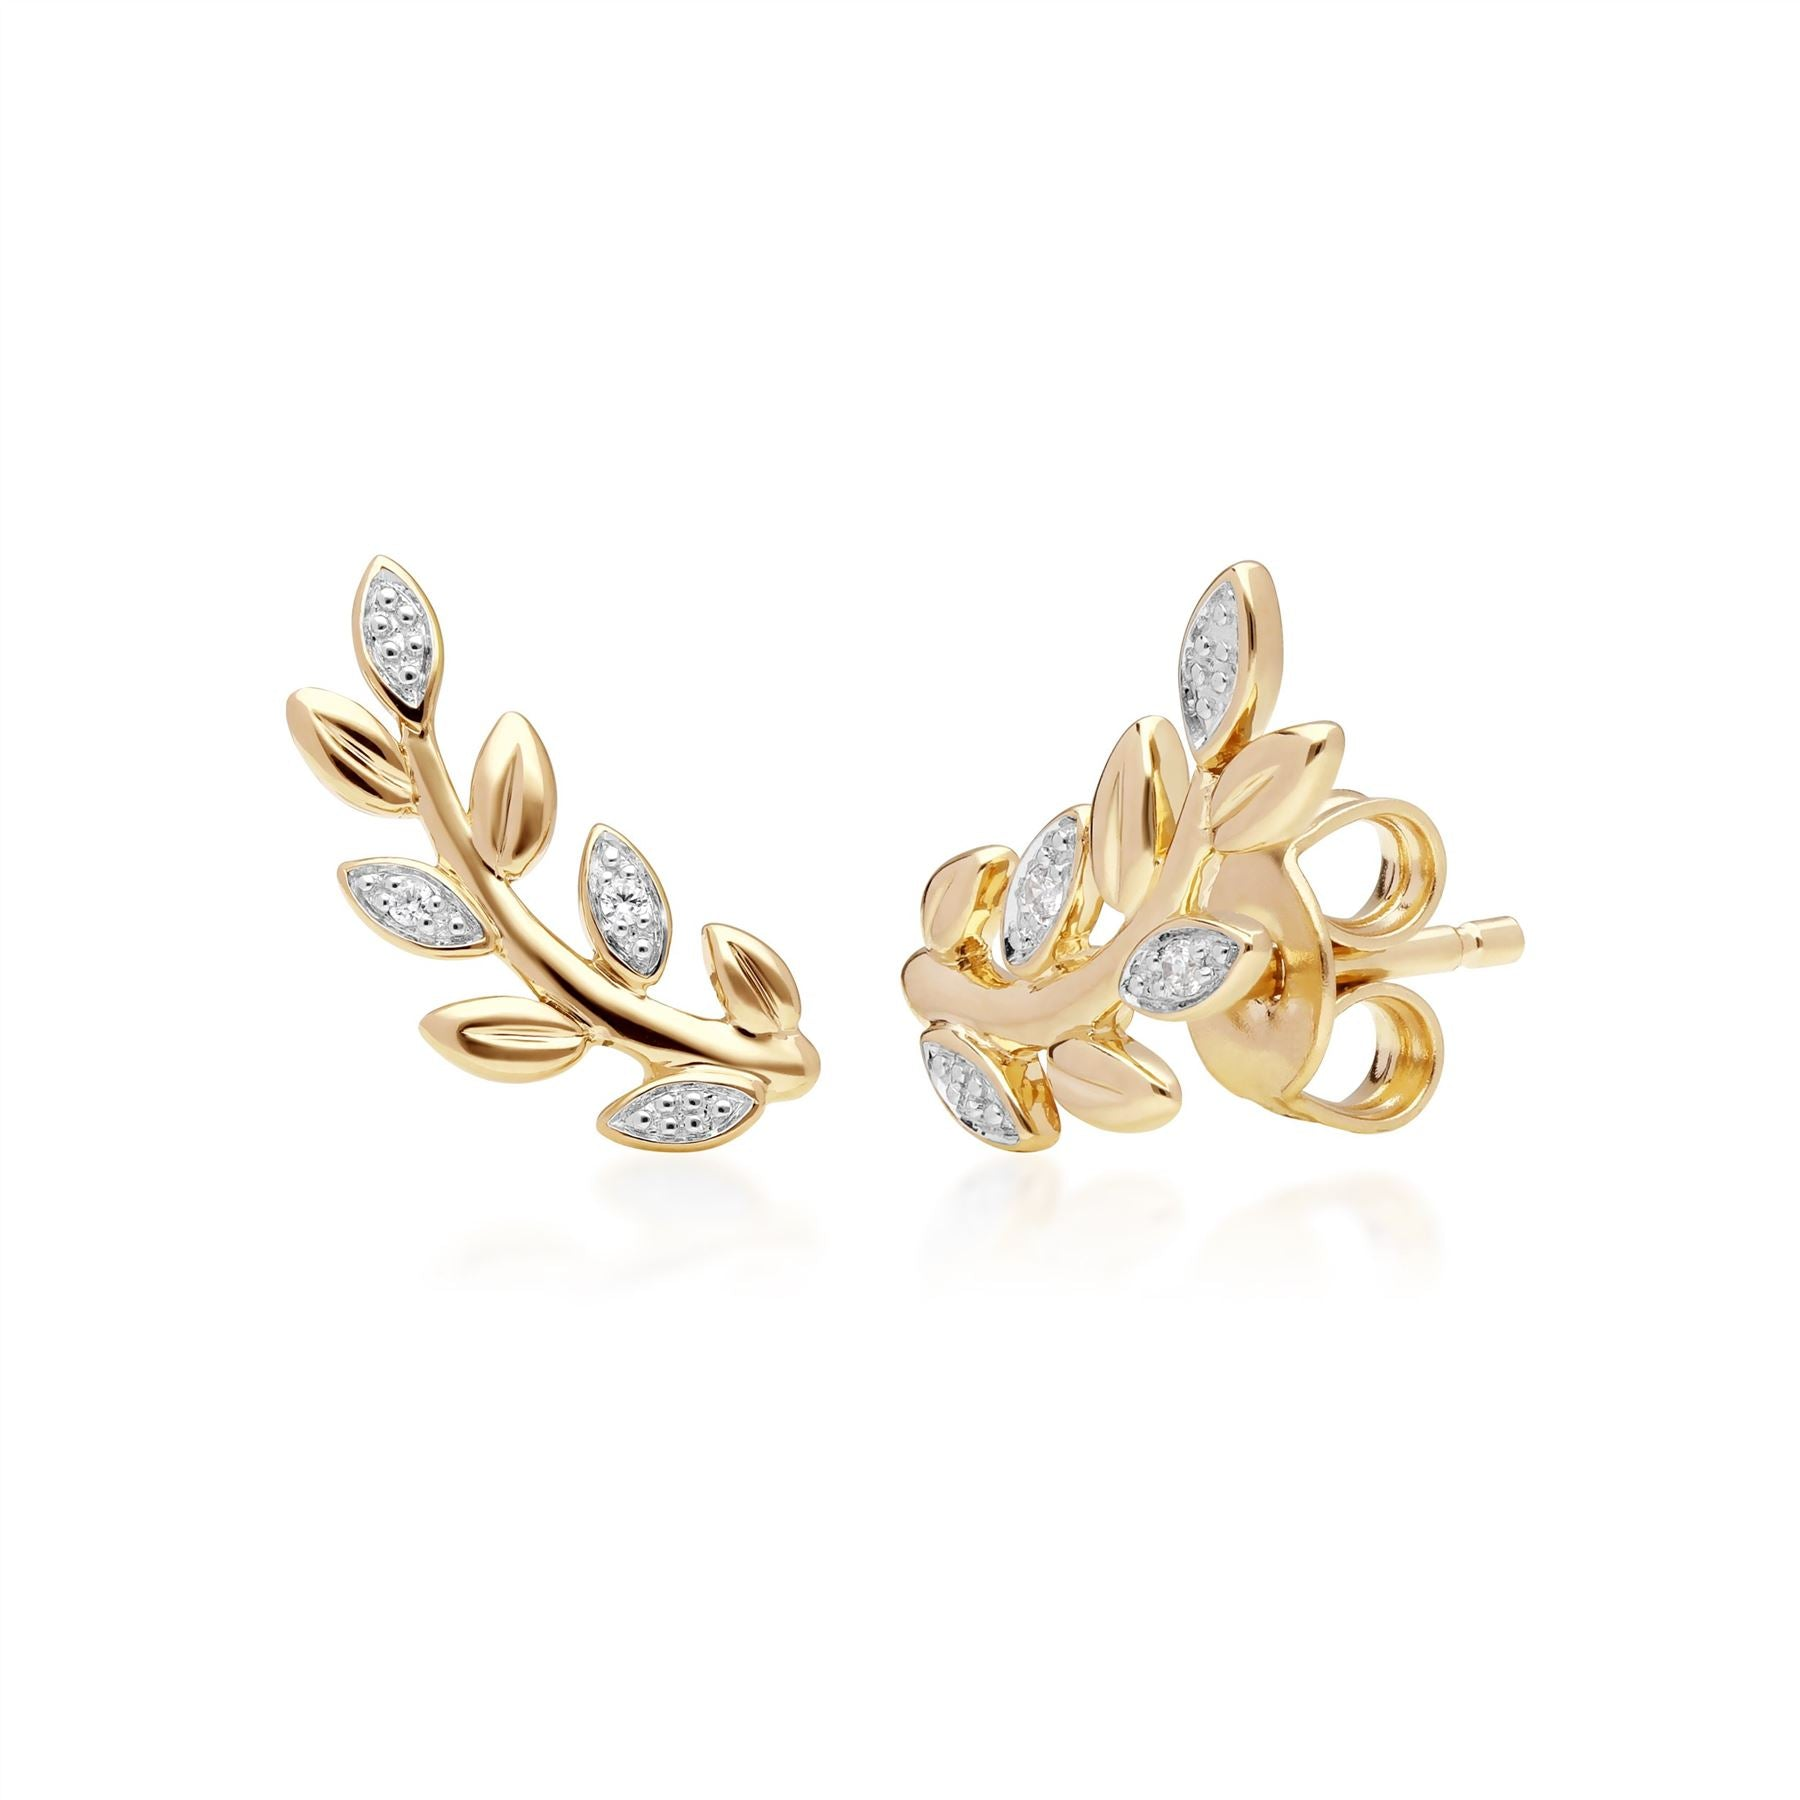 O Leaf Diamond Pave Stud Earrings in 9ct Yellow Gold Deal Price £ 140.00